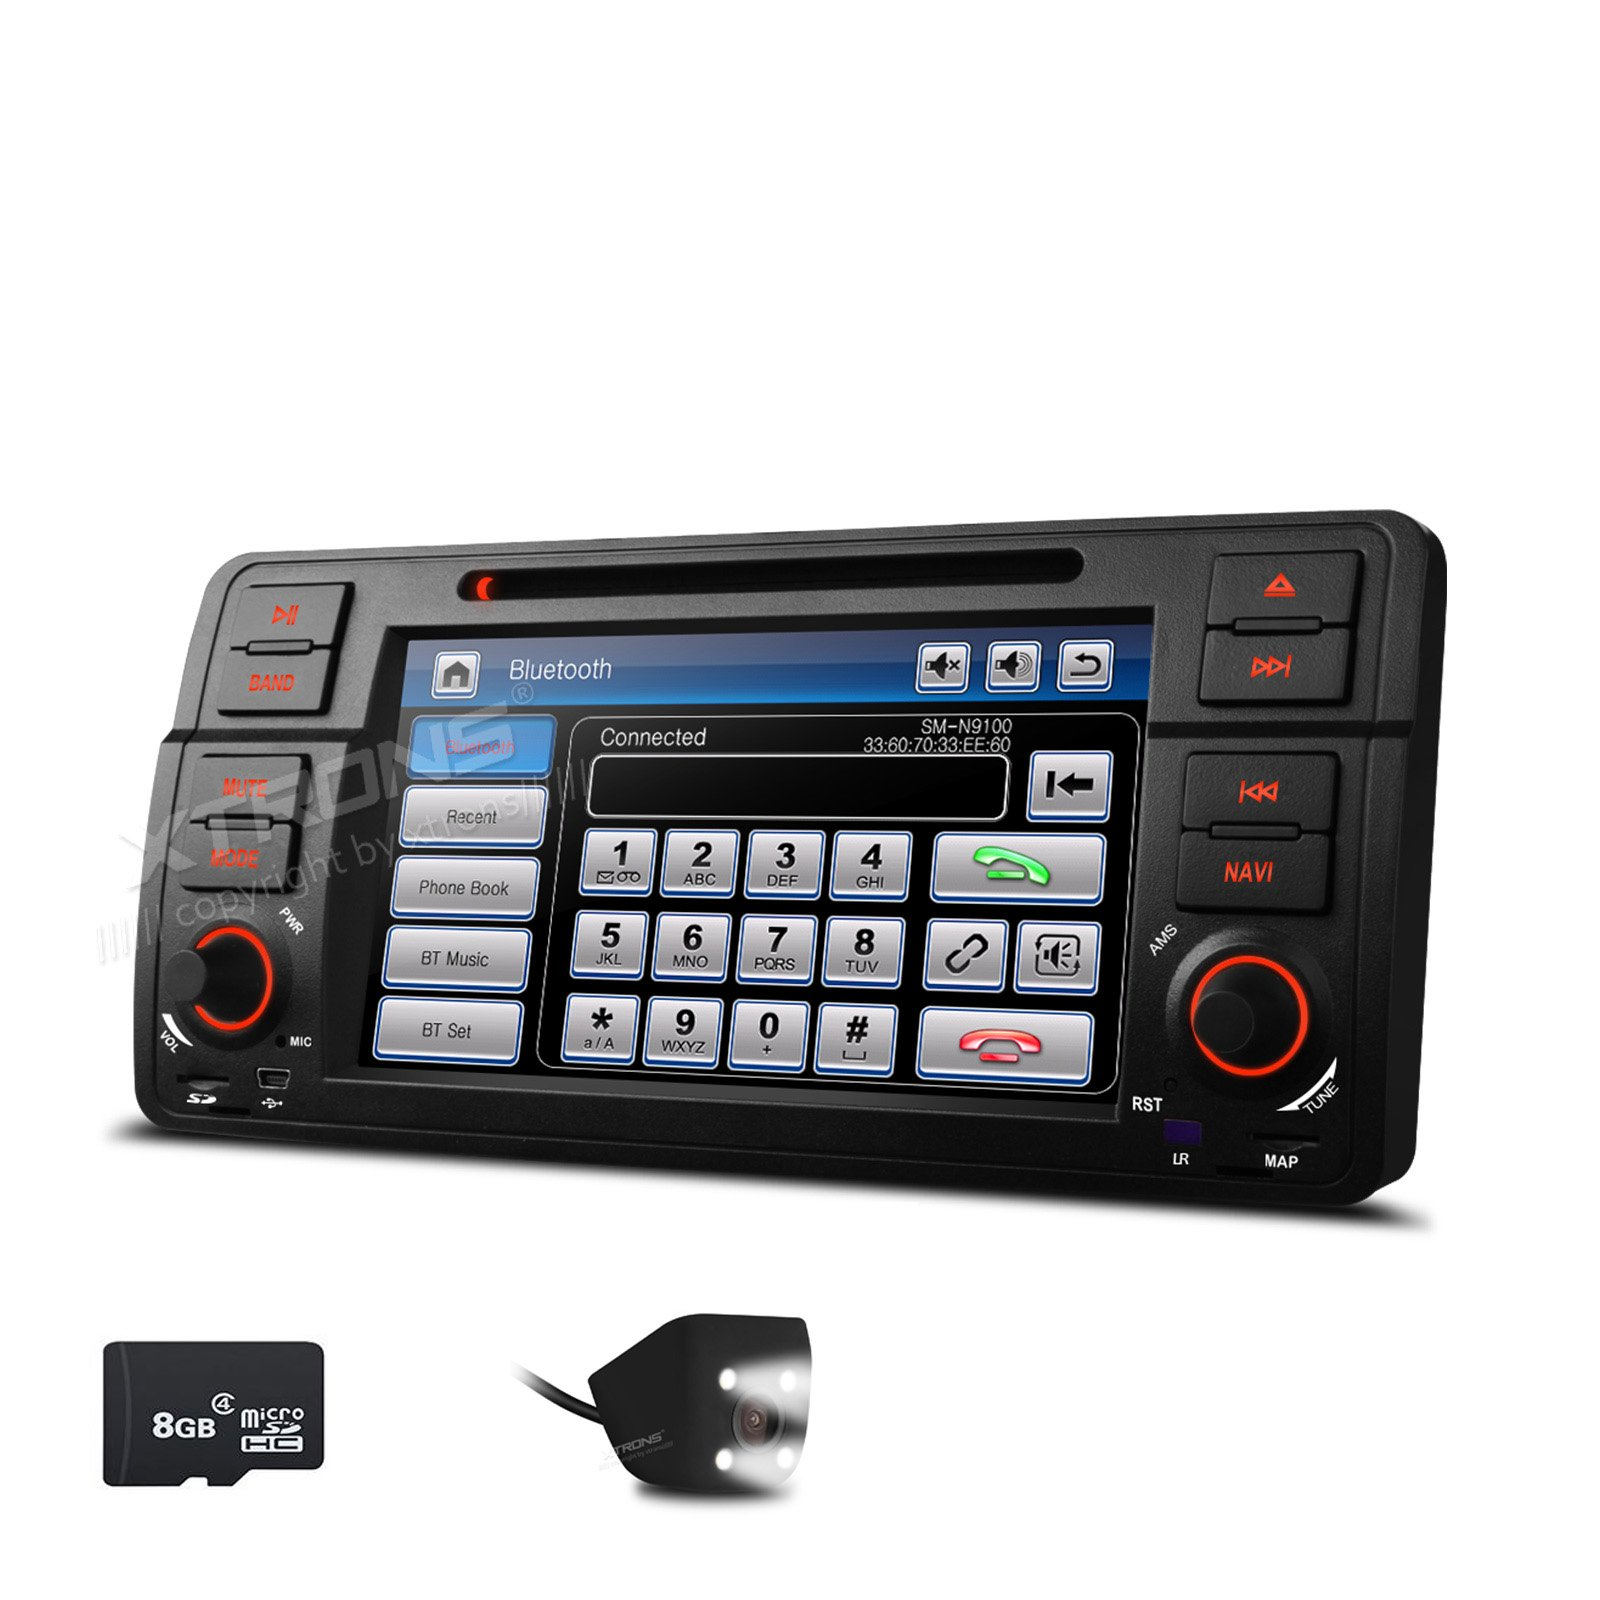 XTRONS 7 Inch HD Digital Touch Screen Car Stereo Radio In-Dash DVD Player with GPS Navigation CANbus Screen Mirroring Function for BMW E46 318 320 325 Reversing Camera Included